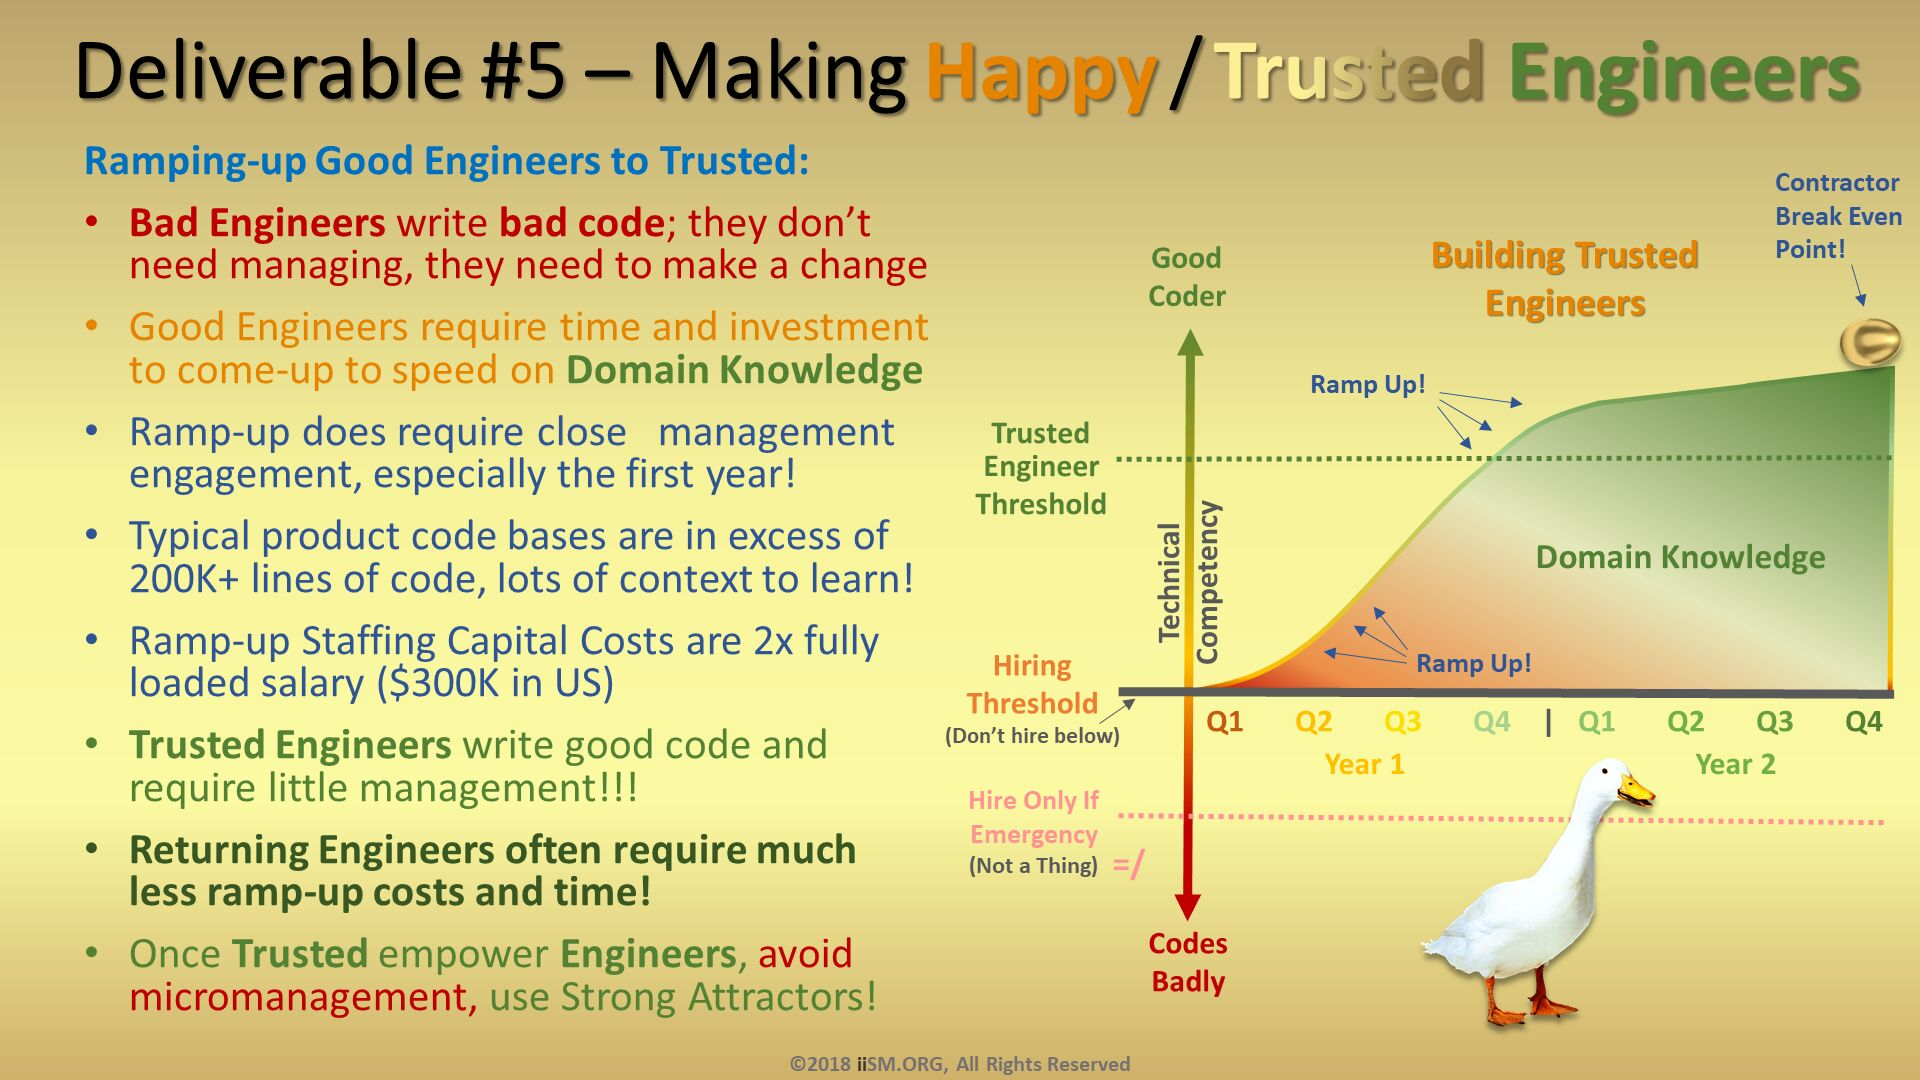 Deliverable #5 – Making Happy / Trusted Engineers. Ramping-up Good Engineers to Trusted: Bad Engineers write bad code; they don't need managing, they need to make a change Good Engineers require time and investment to come-up to speed on Domain Knowledge Ramp-up does require close   management engagement, especially the first year! Typical product code bases are in excess of 200K+ lines of code, lots of context to learn! Ramp-up Staffing Capital Costs are 2x fully loaded salary ($300K in US) Trusted Engineers write good code and require little management!!! Returning Engineers often require much less ramp-up costs and time! Once Trusted empower Engineers, avoid micromanagement, use Strong Attractors! . ©2018 iiSM.ORG, All Rights Reserved.  =/.